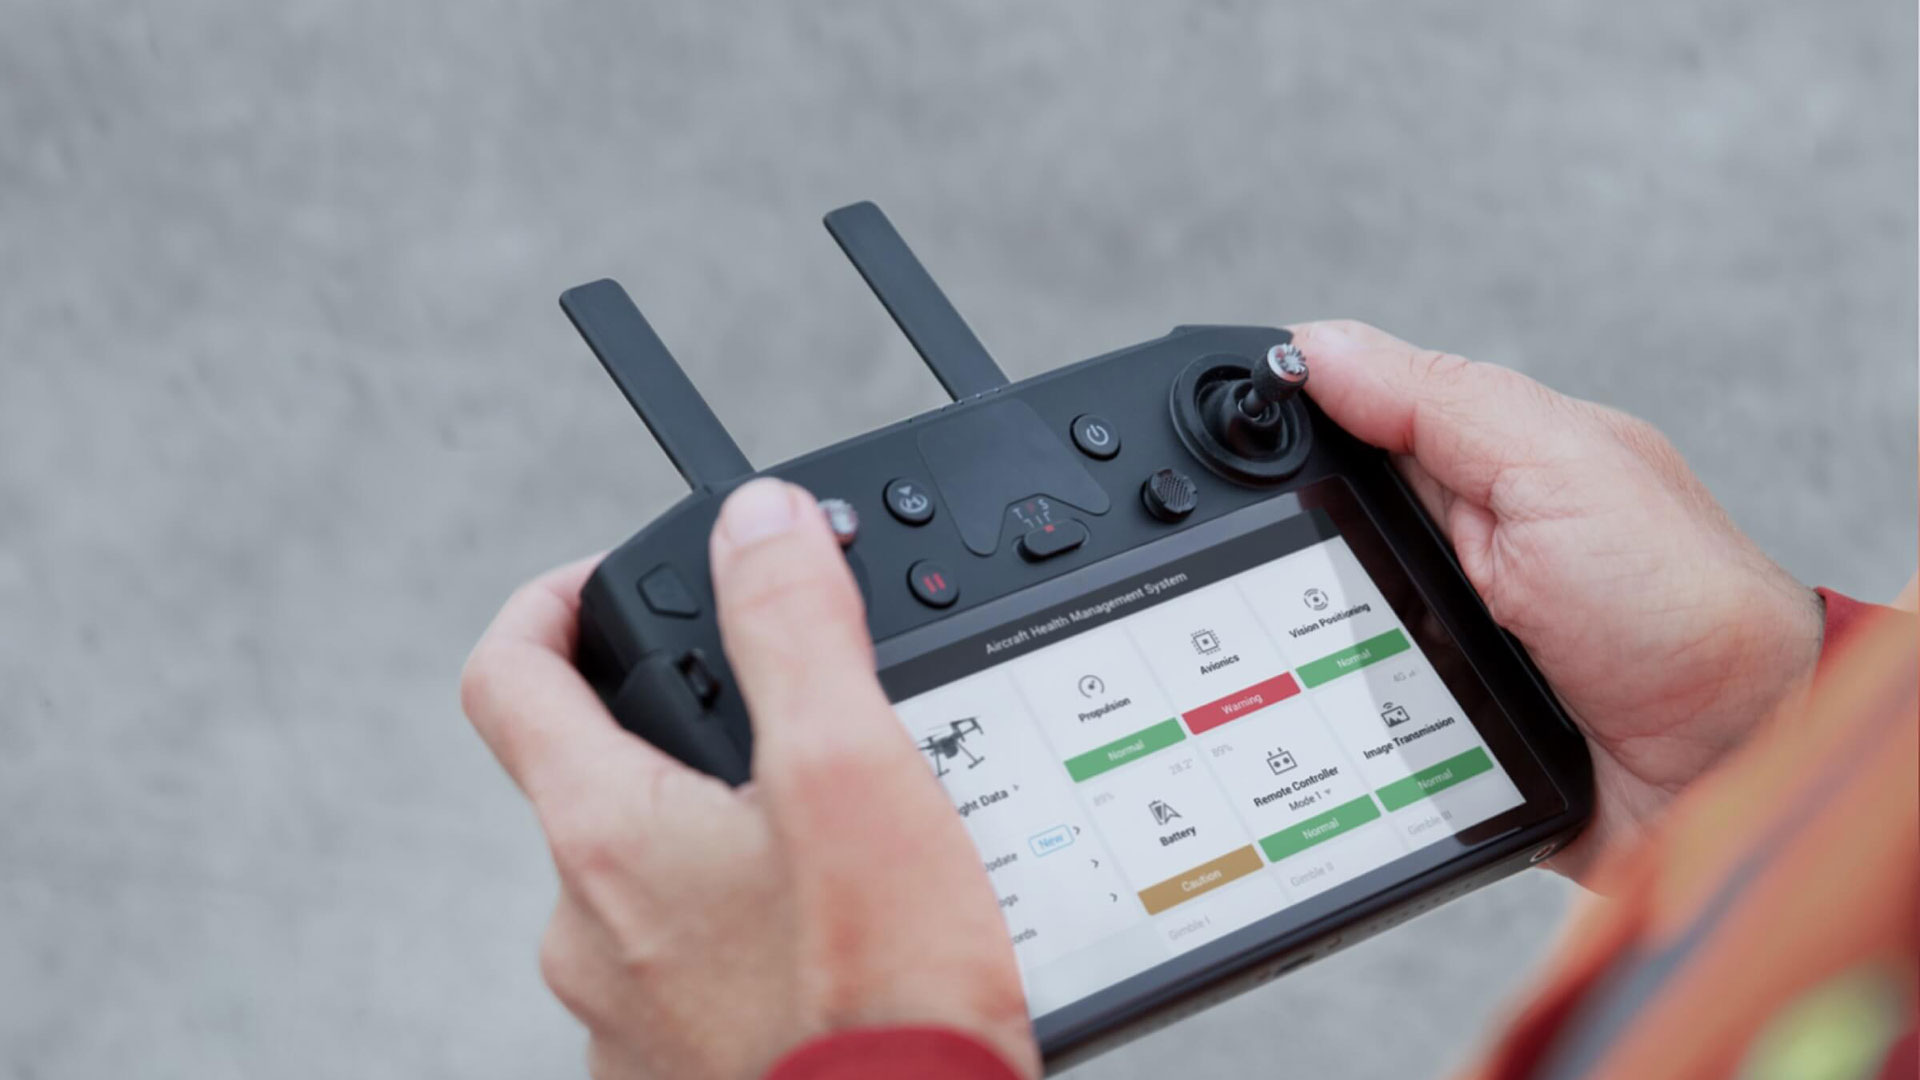 DJI Matrice 300 RTK Professional Maintenance for Your Drone Fleet